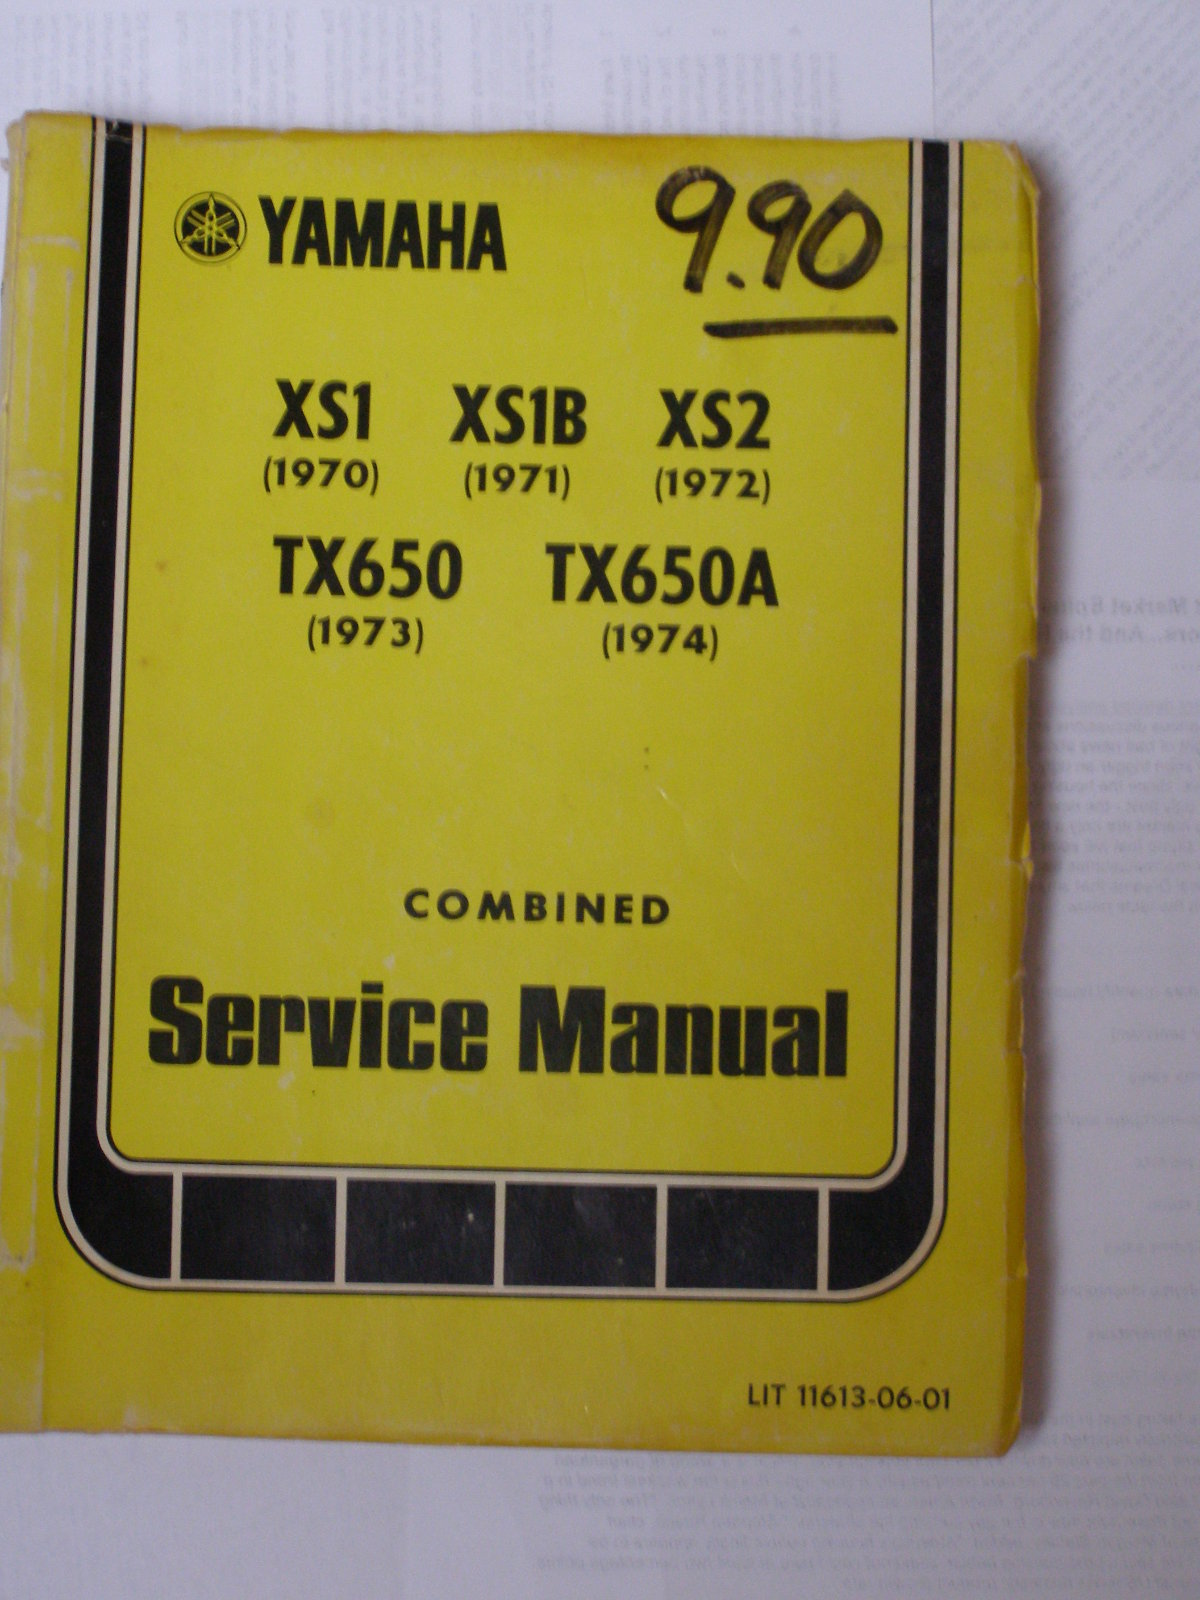 web xs650 xs1 xs2 tx650 tx650a service manual 1970 1974 thexscafe XS2 Bow String at bayanpartner.co